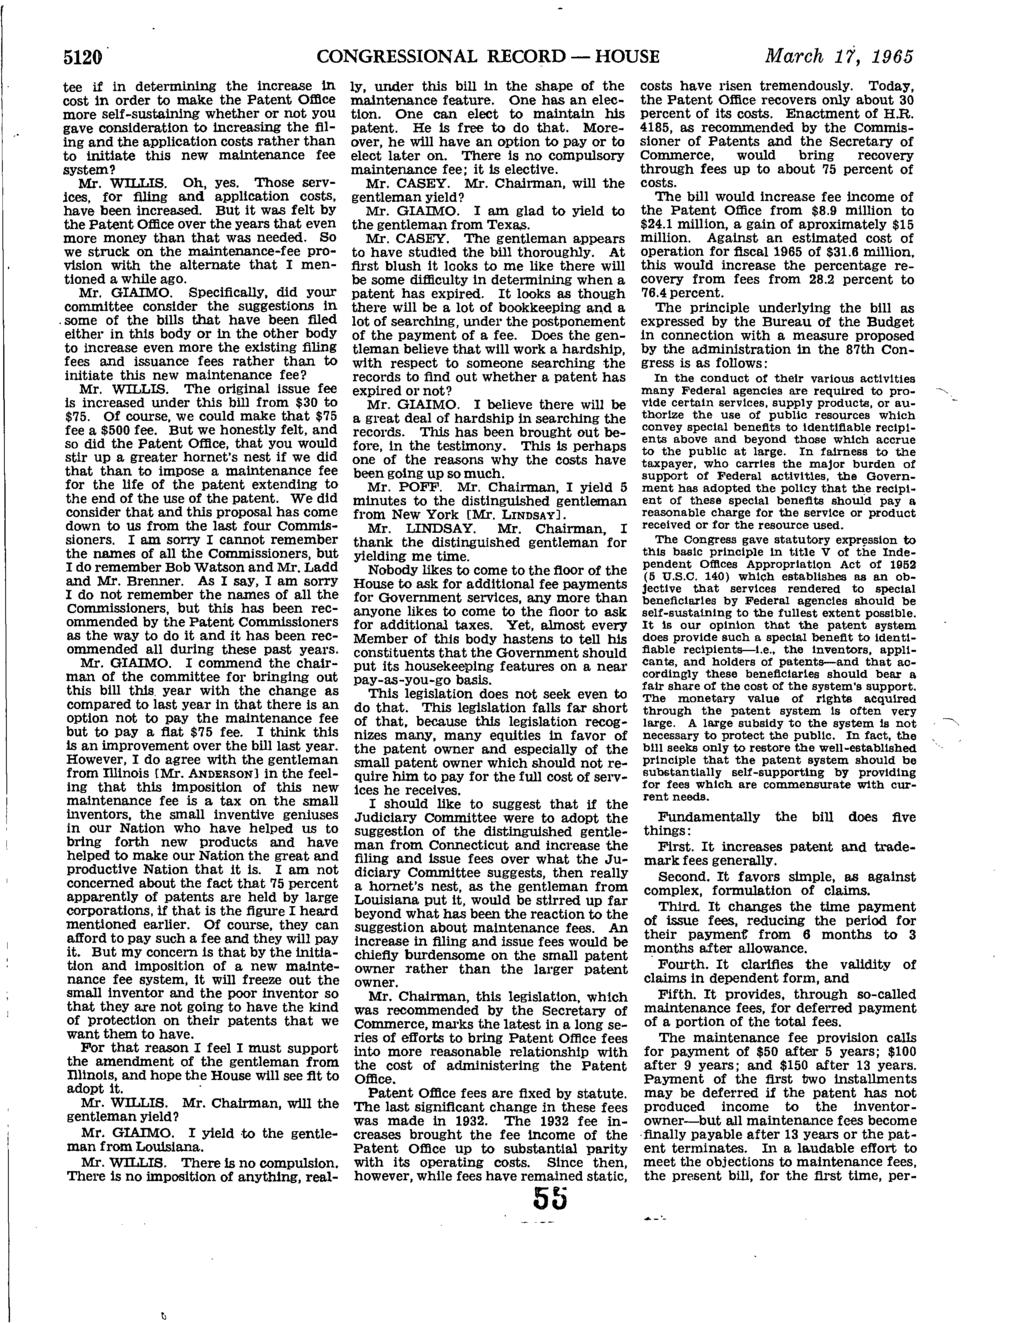 5120 CONGRESSIONAL RECORD HOUSE March 17, 1965 tee if in determining the increase in cost in order to make the Patent Office more self-sustaining whether or not you gave consideration to increasing